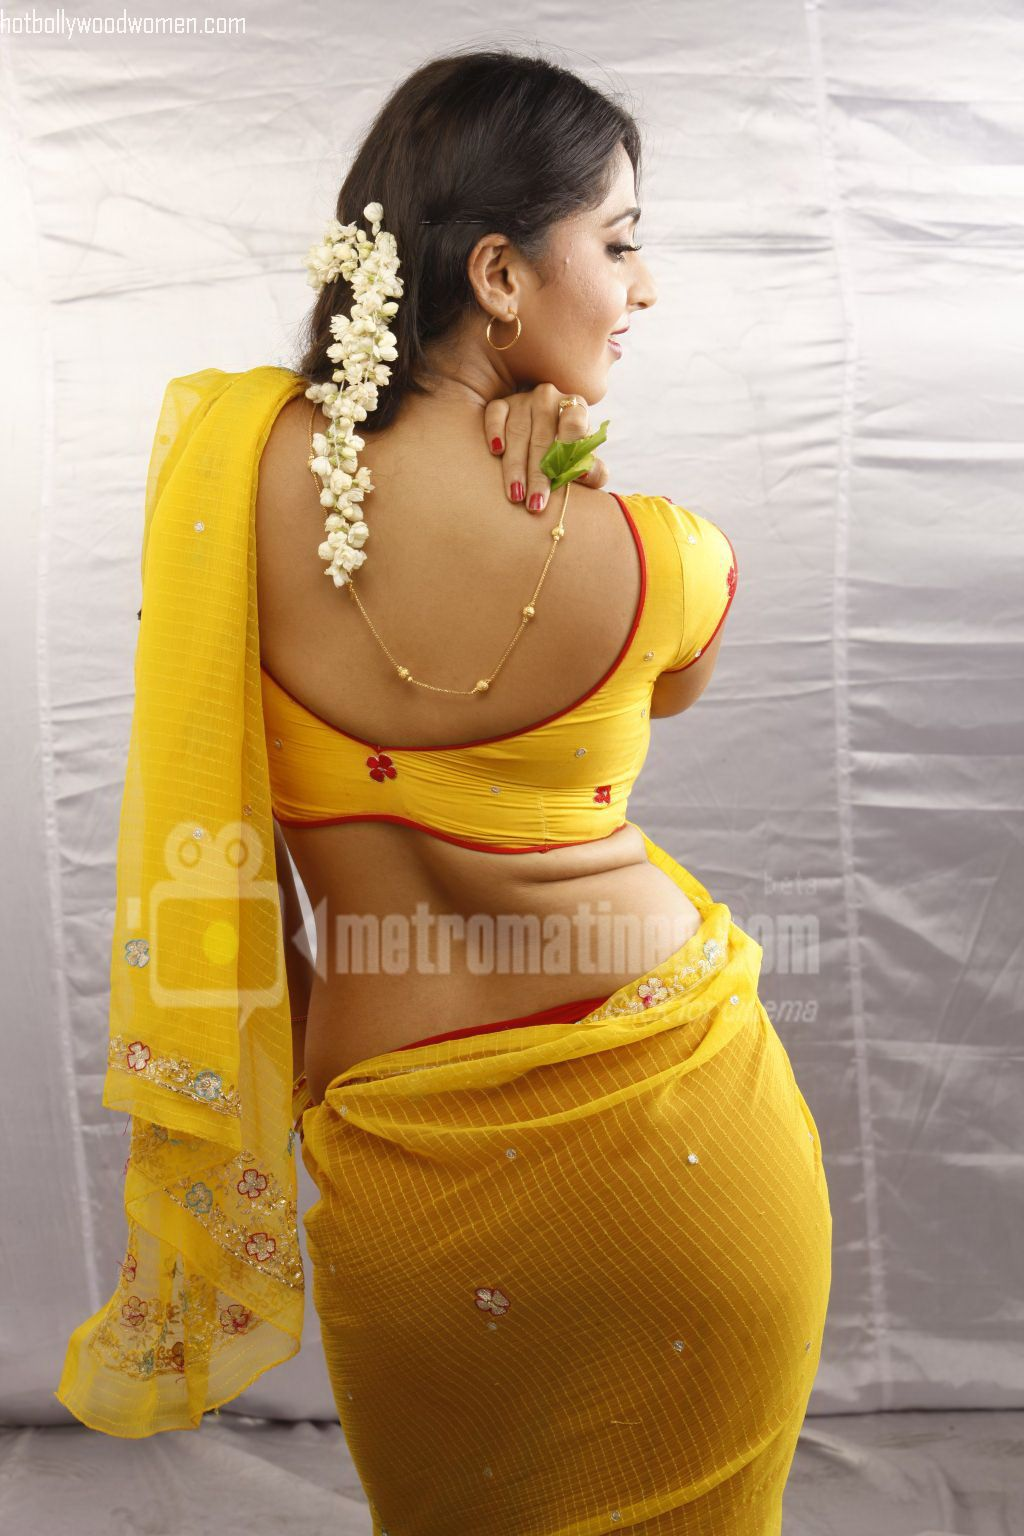 has the best butt in Indian actresses. Look at Anushka Shetty's gaand